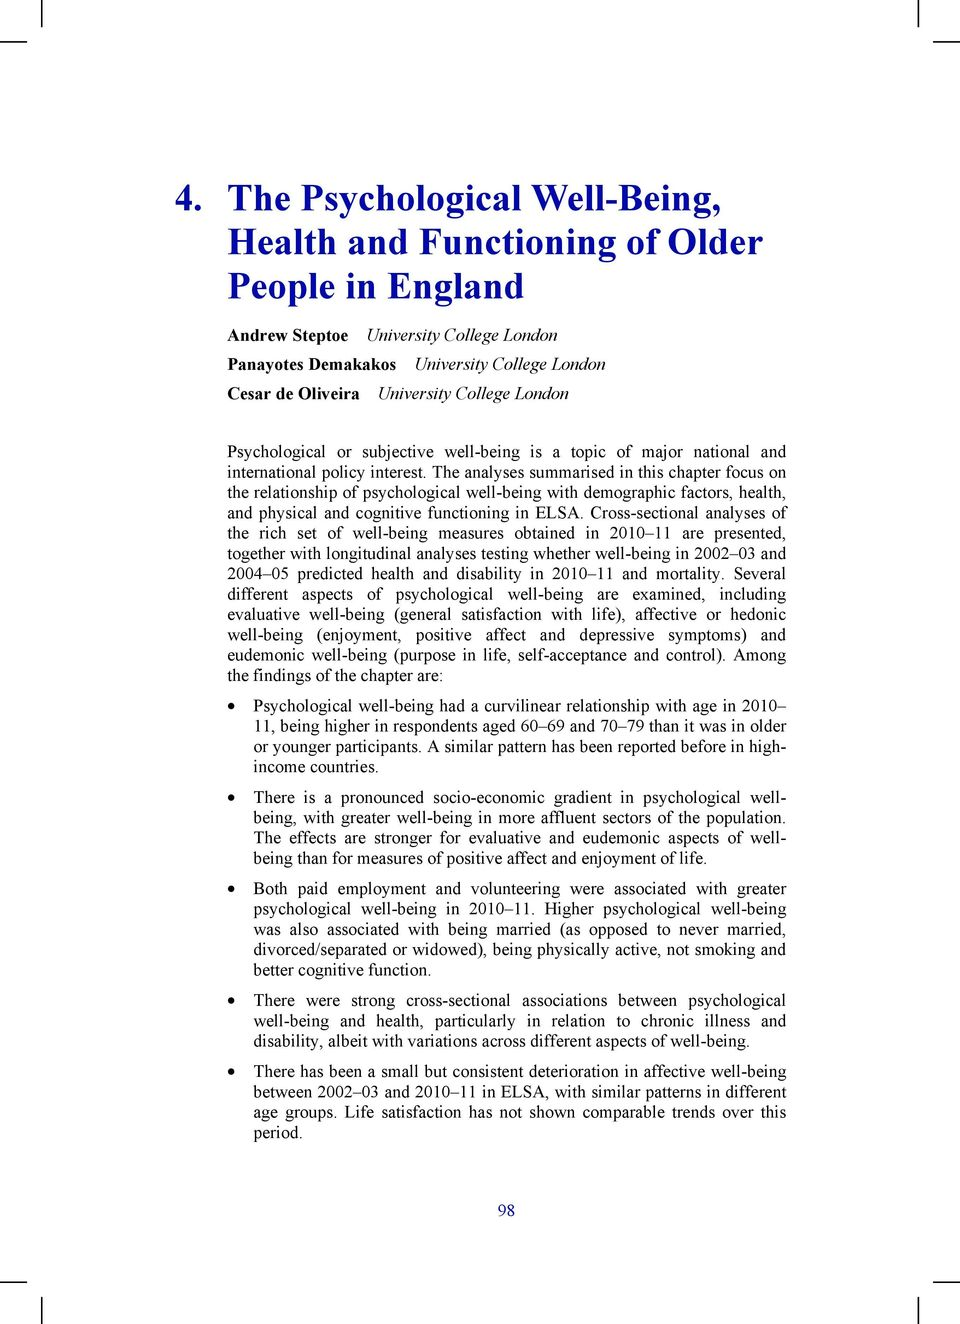 The analyses summarised in this chapter focus on the relationship of psychological well-being with demographic factors, health, and physical and cognitive functioning in ELSA.